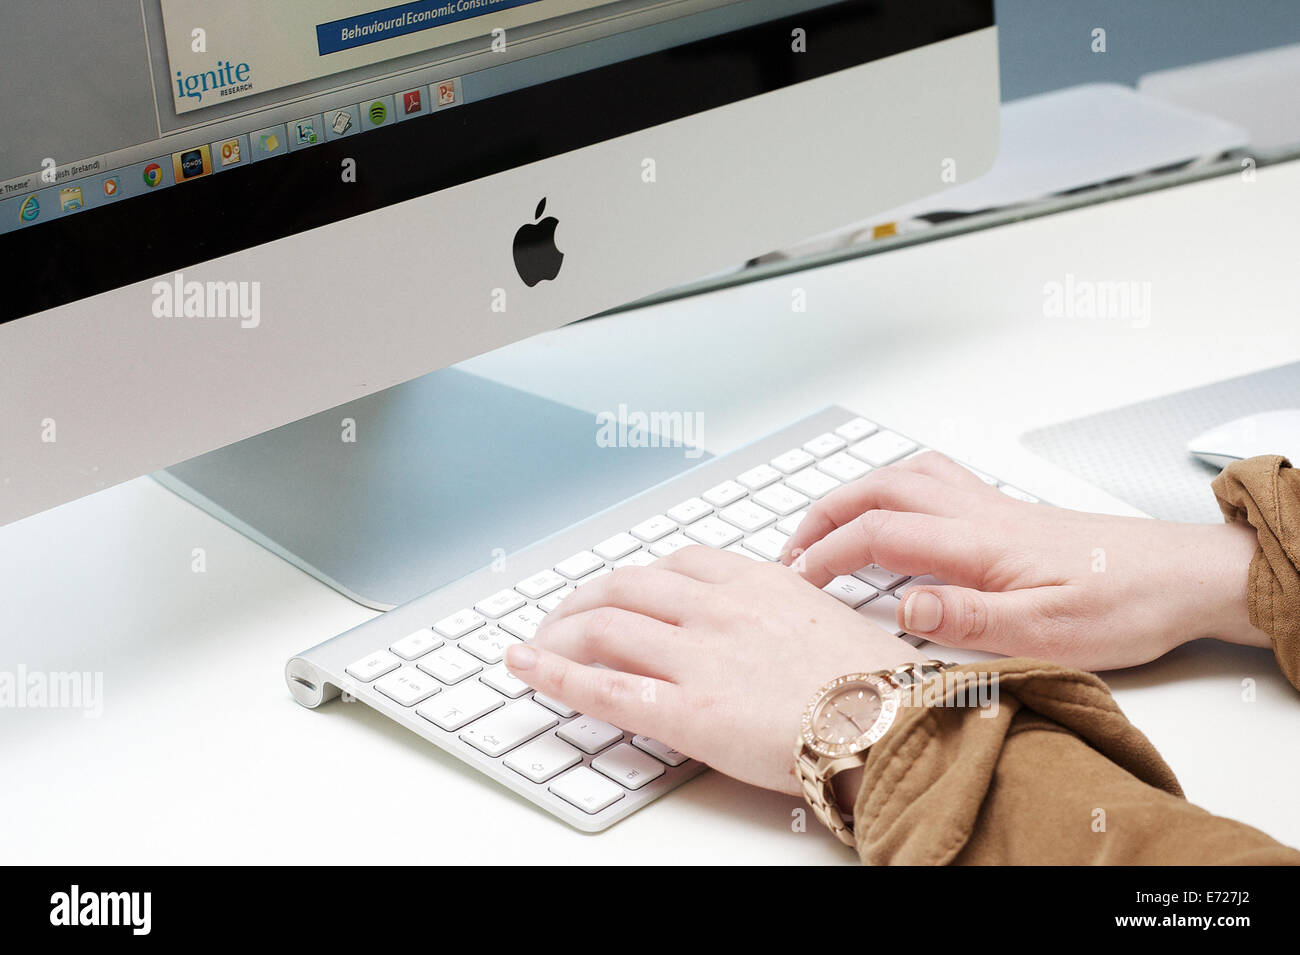 Female hands typing on the keyboard of an Apple Imac